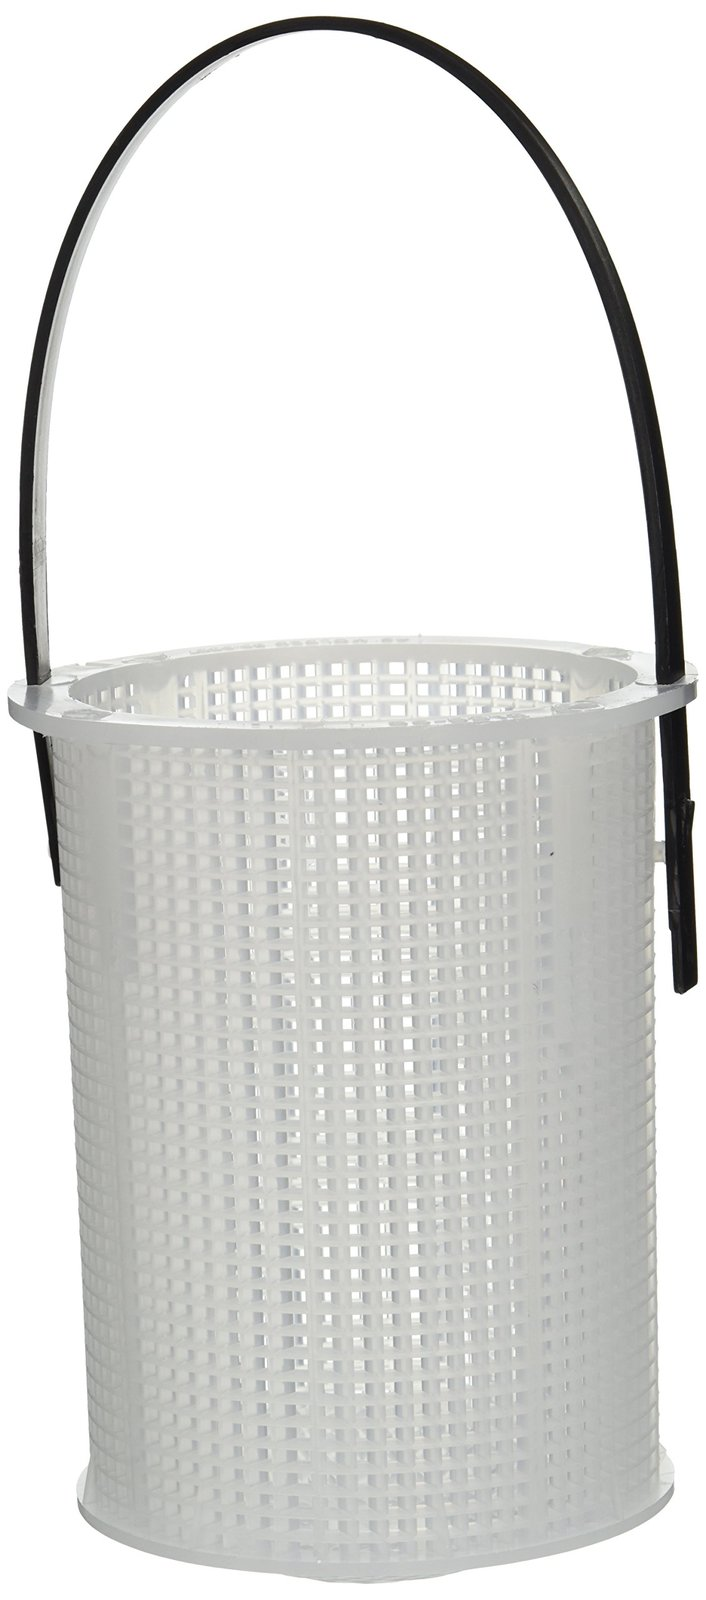 Pentair 355318 plastic strainer basket replacement pool - Strainer basket for swimming pool ...